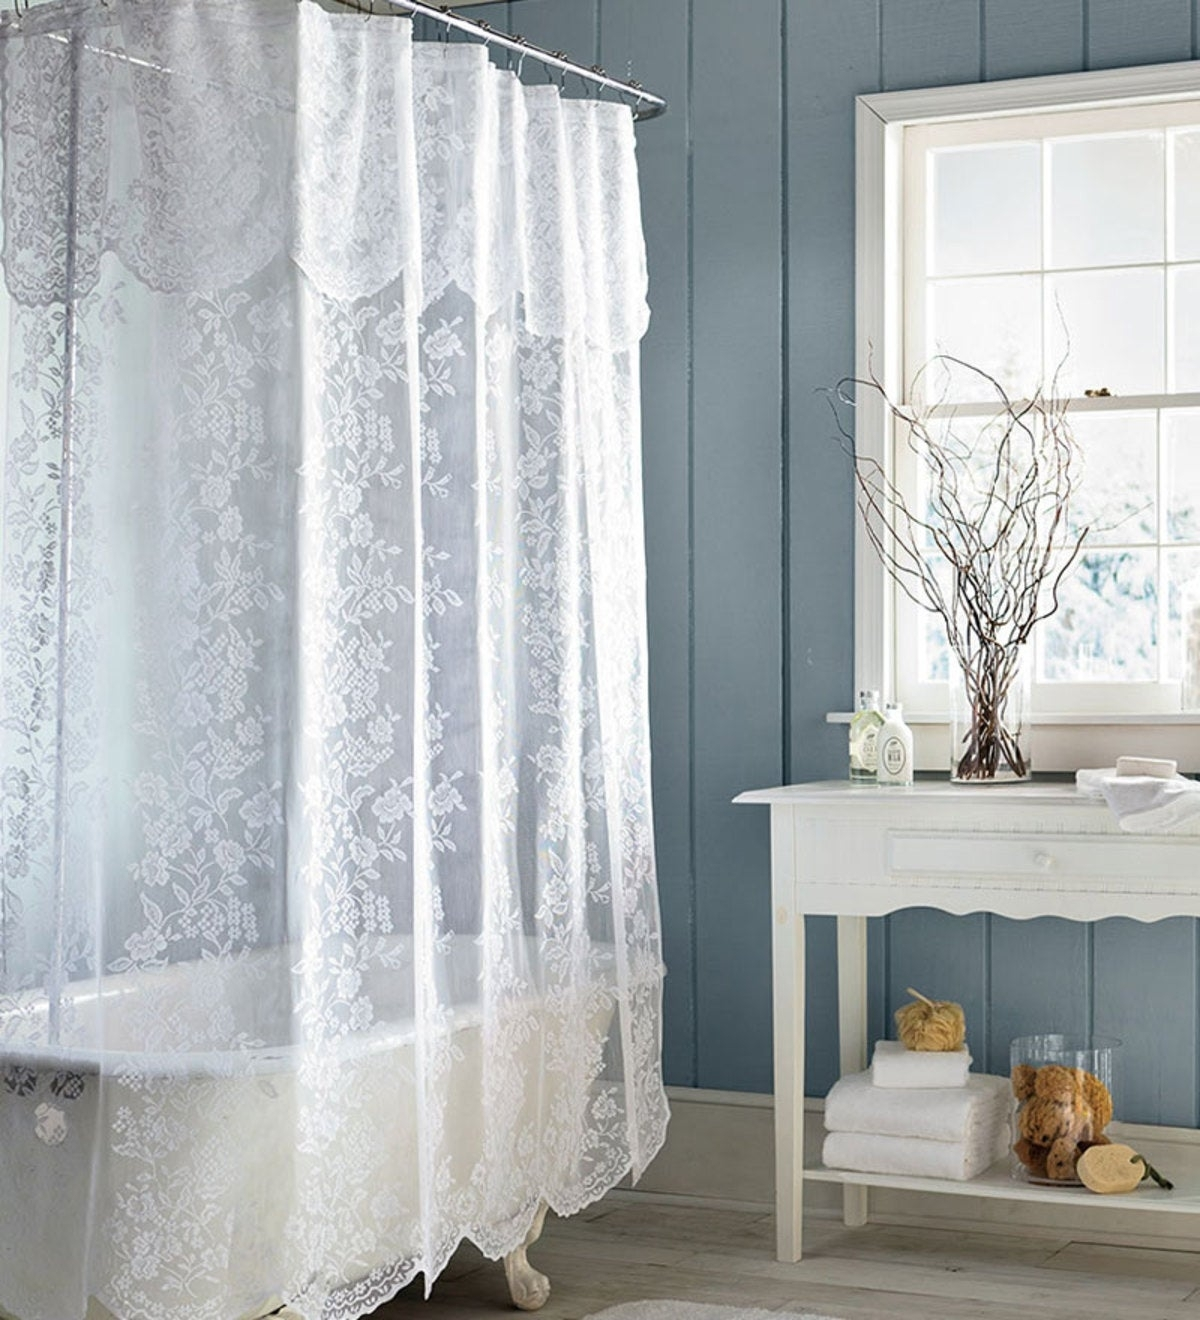 Sheer Shower Curtain Ideas On Foter